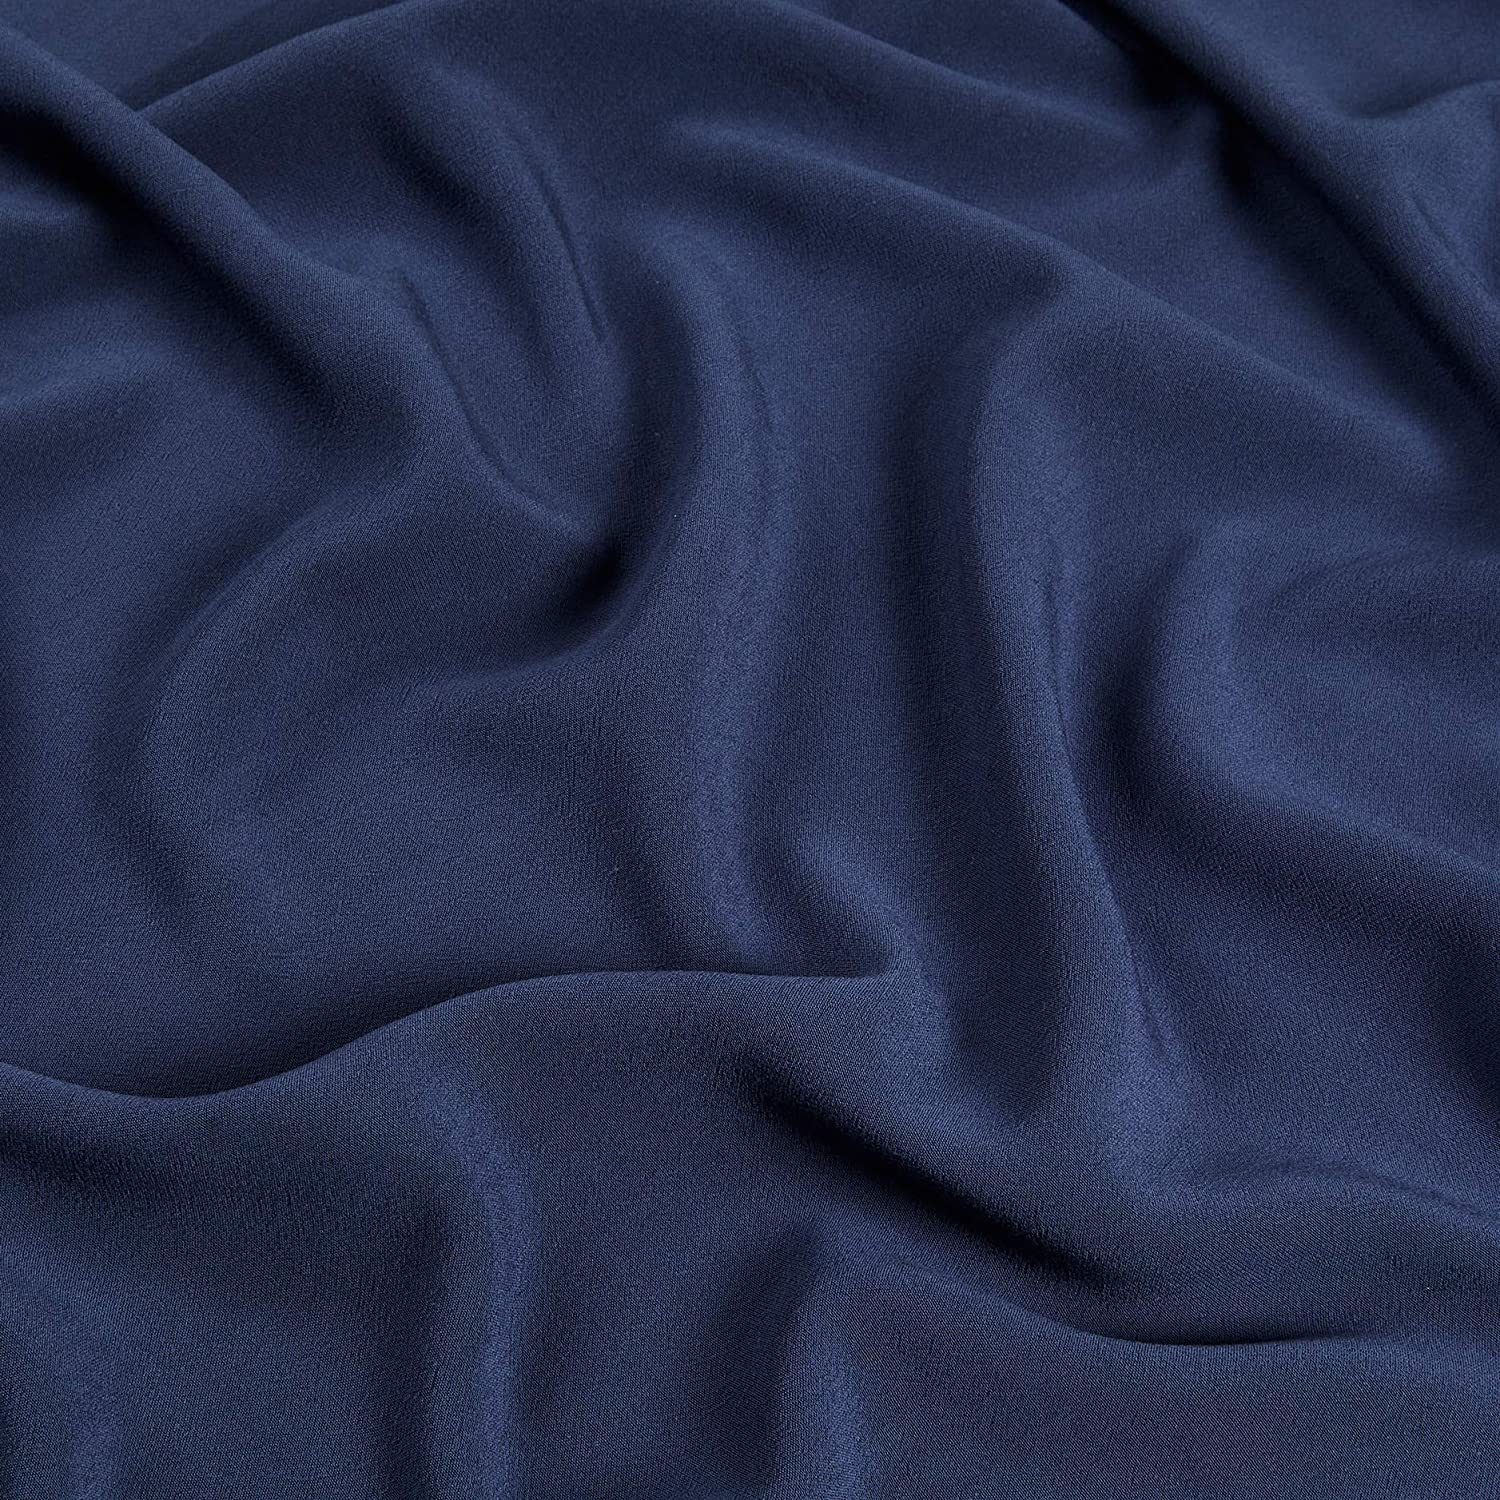 Versatile and affordable, semi-synthetic rayon fabric is widely used in the fashion industry worldwide